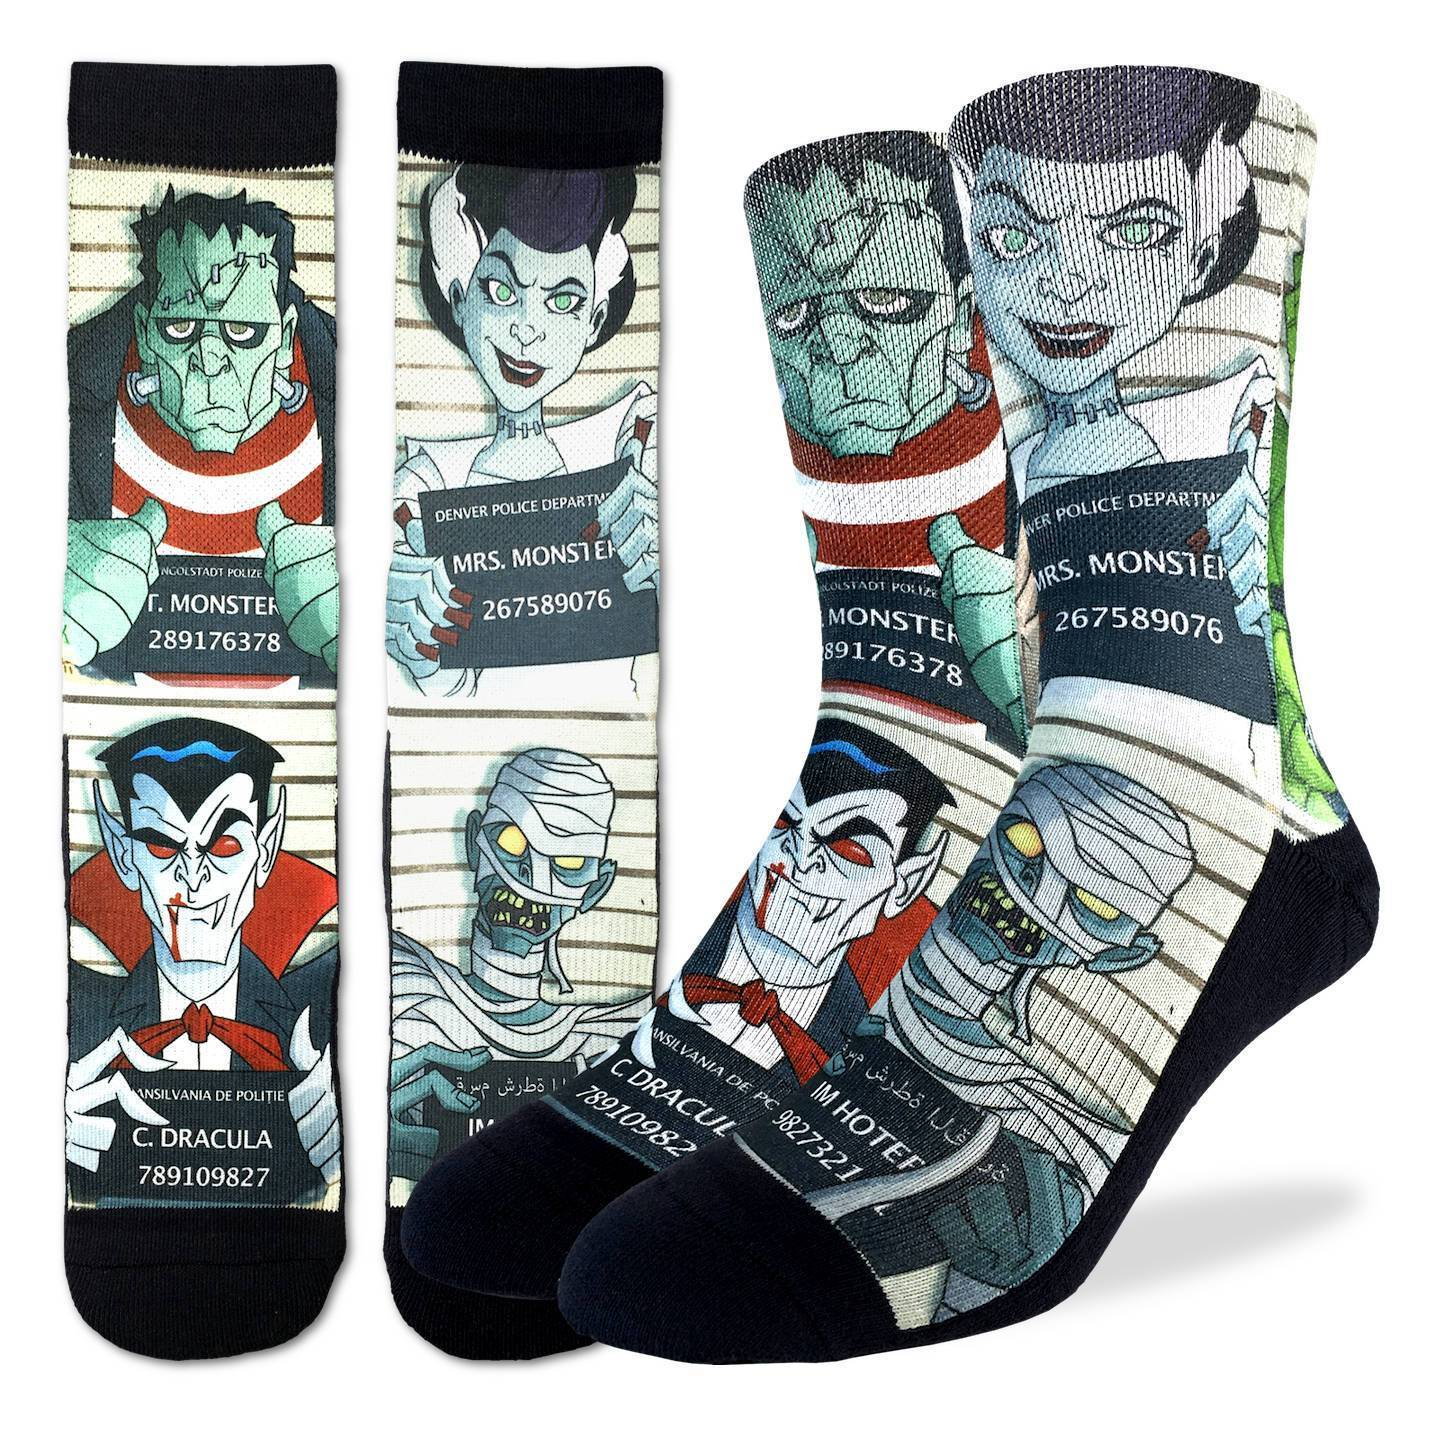 Men's Halloween Mugshots Socks - Good Luck Sock